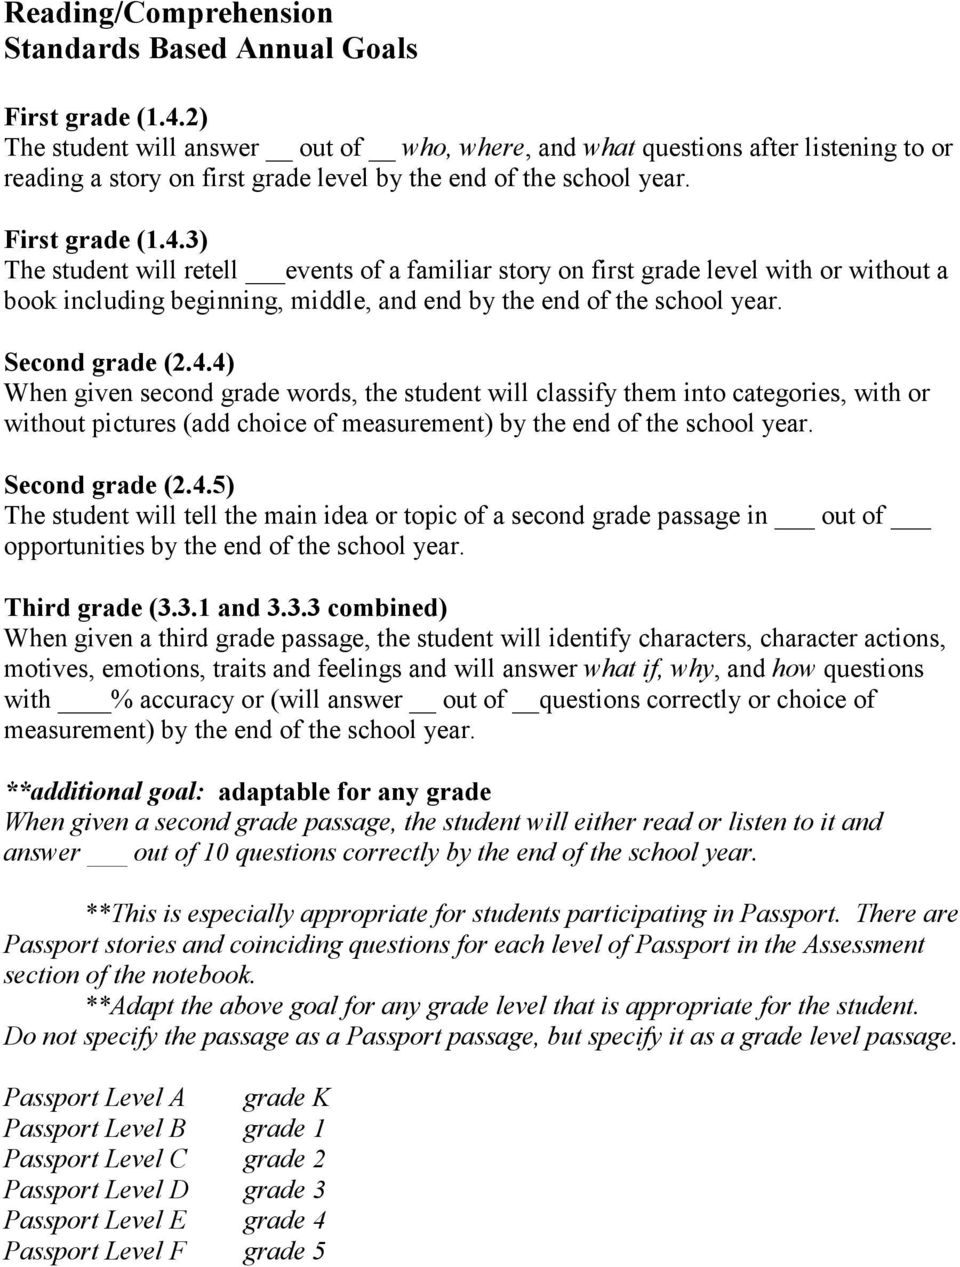 Readingfluency Standards Based Annual Goals Pdf